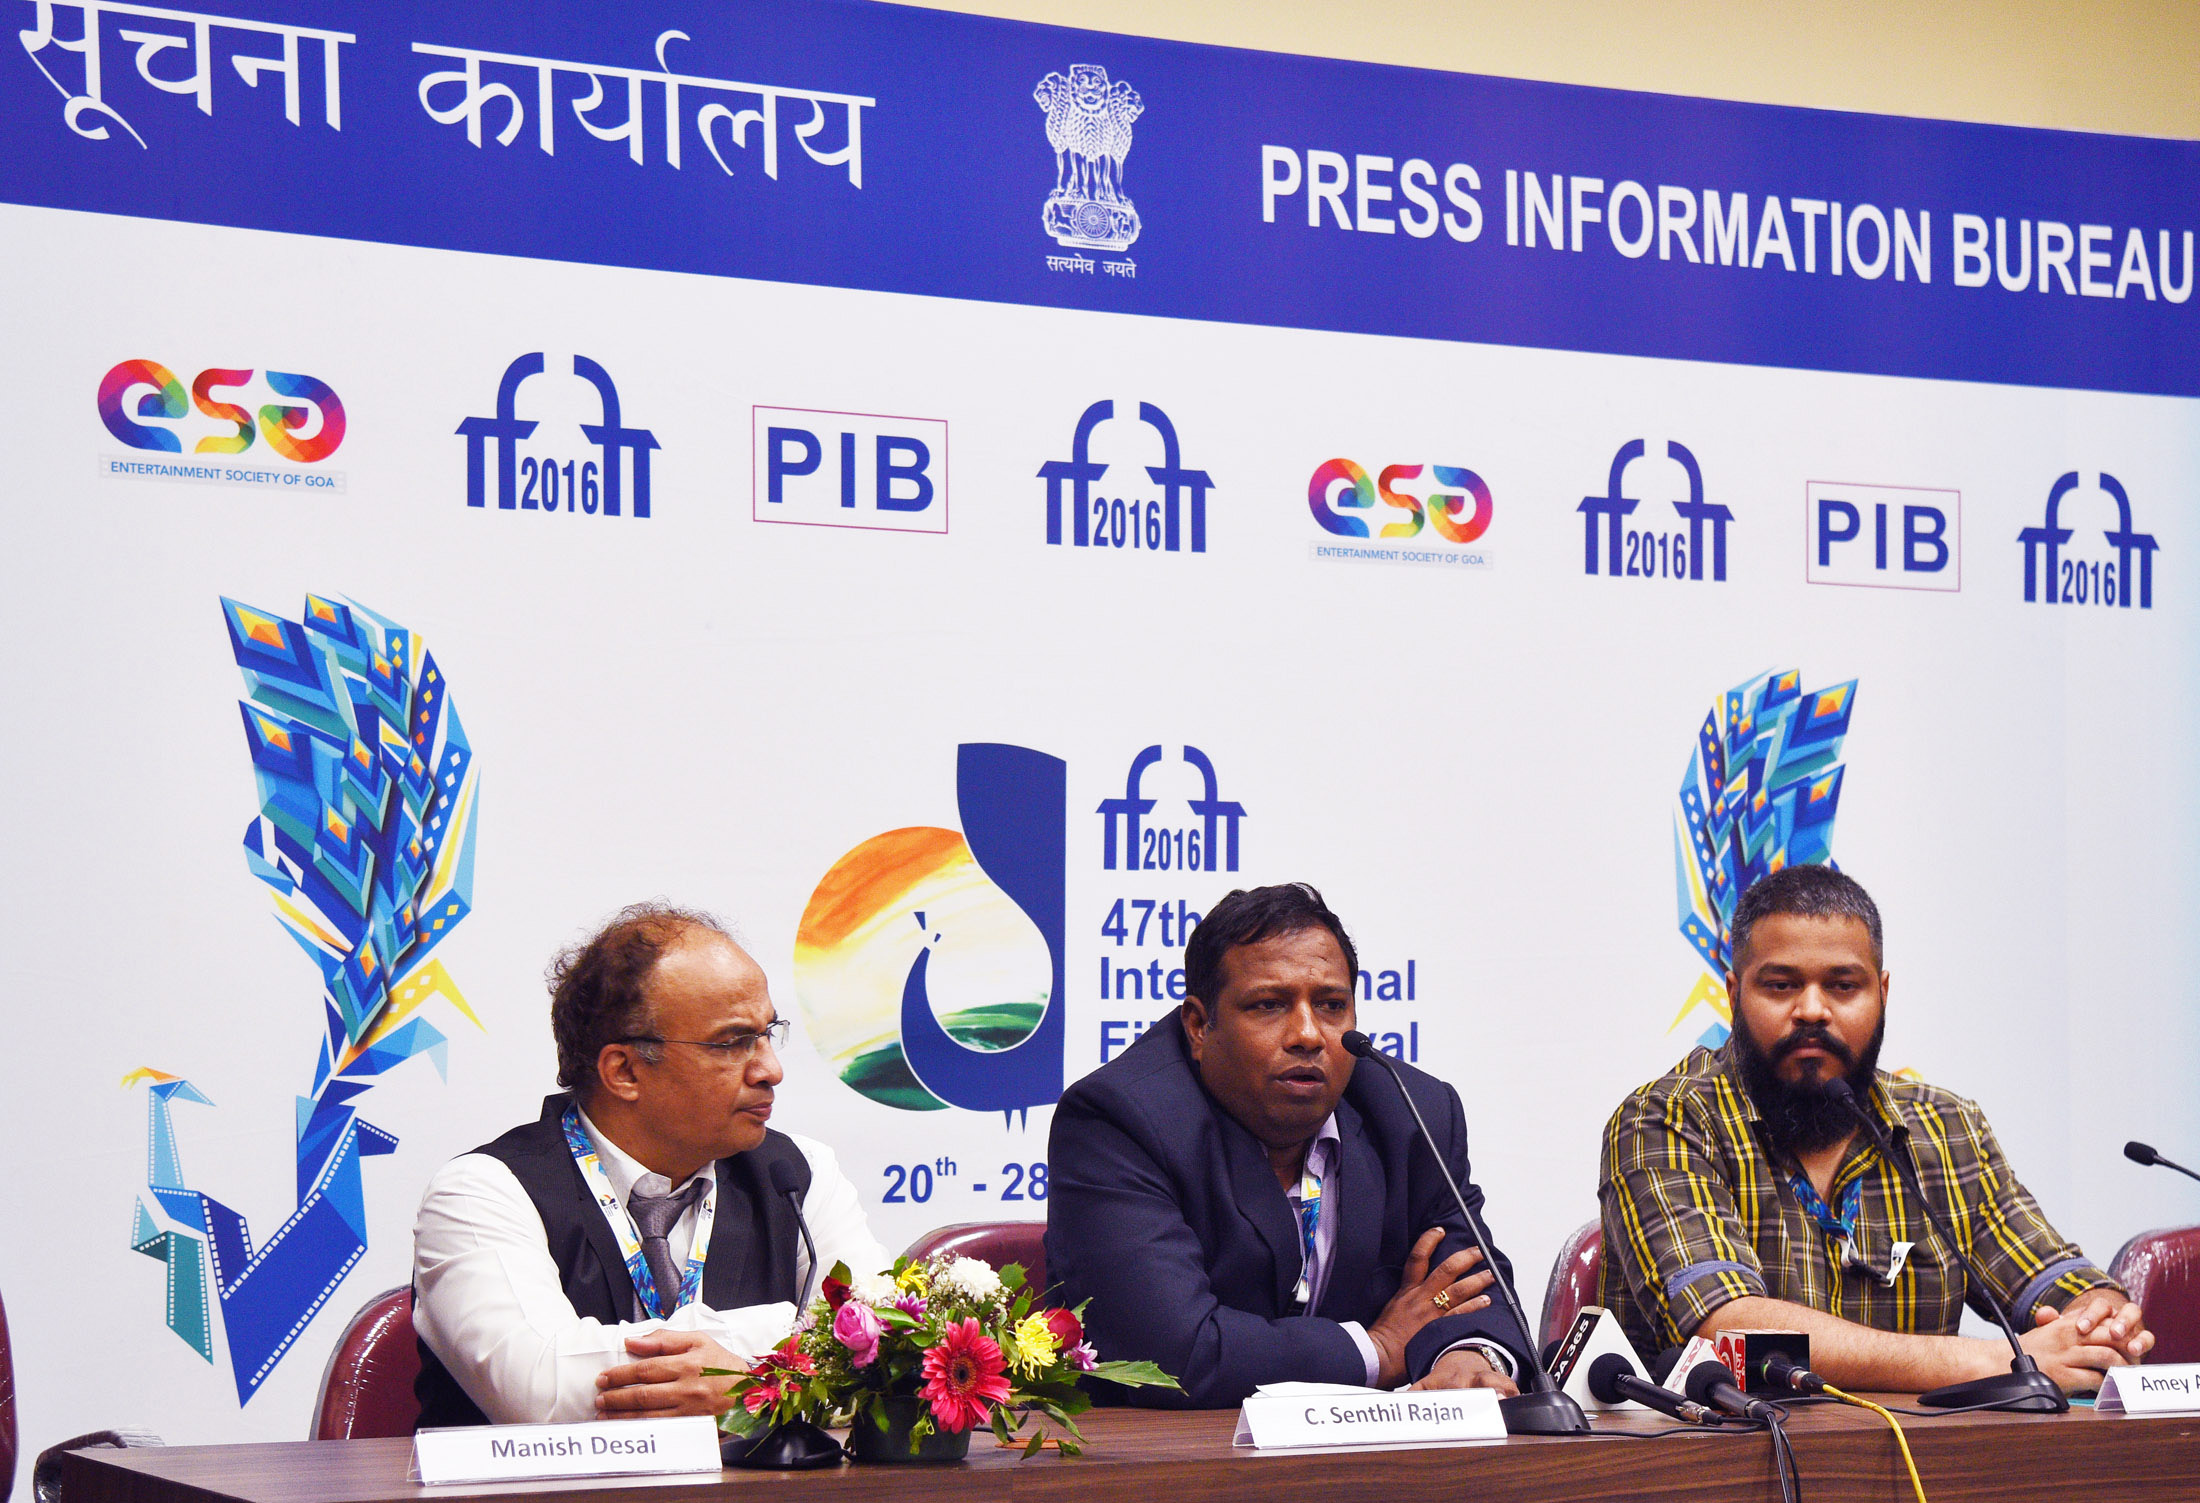 The Festival Director, Shri Senthil Rajan and the CEO, ESG, Shri Ameya Abhyankar at the Mid Fest Press Conference, during the 47th International Film Festival of India (IFFI-2016), in Panaji, Goa on November 24, 2016.